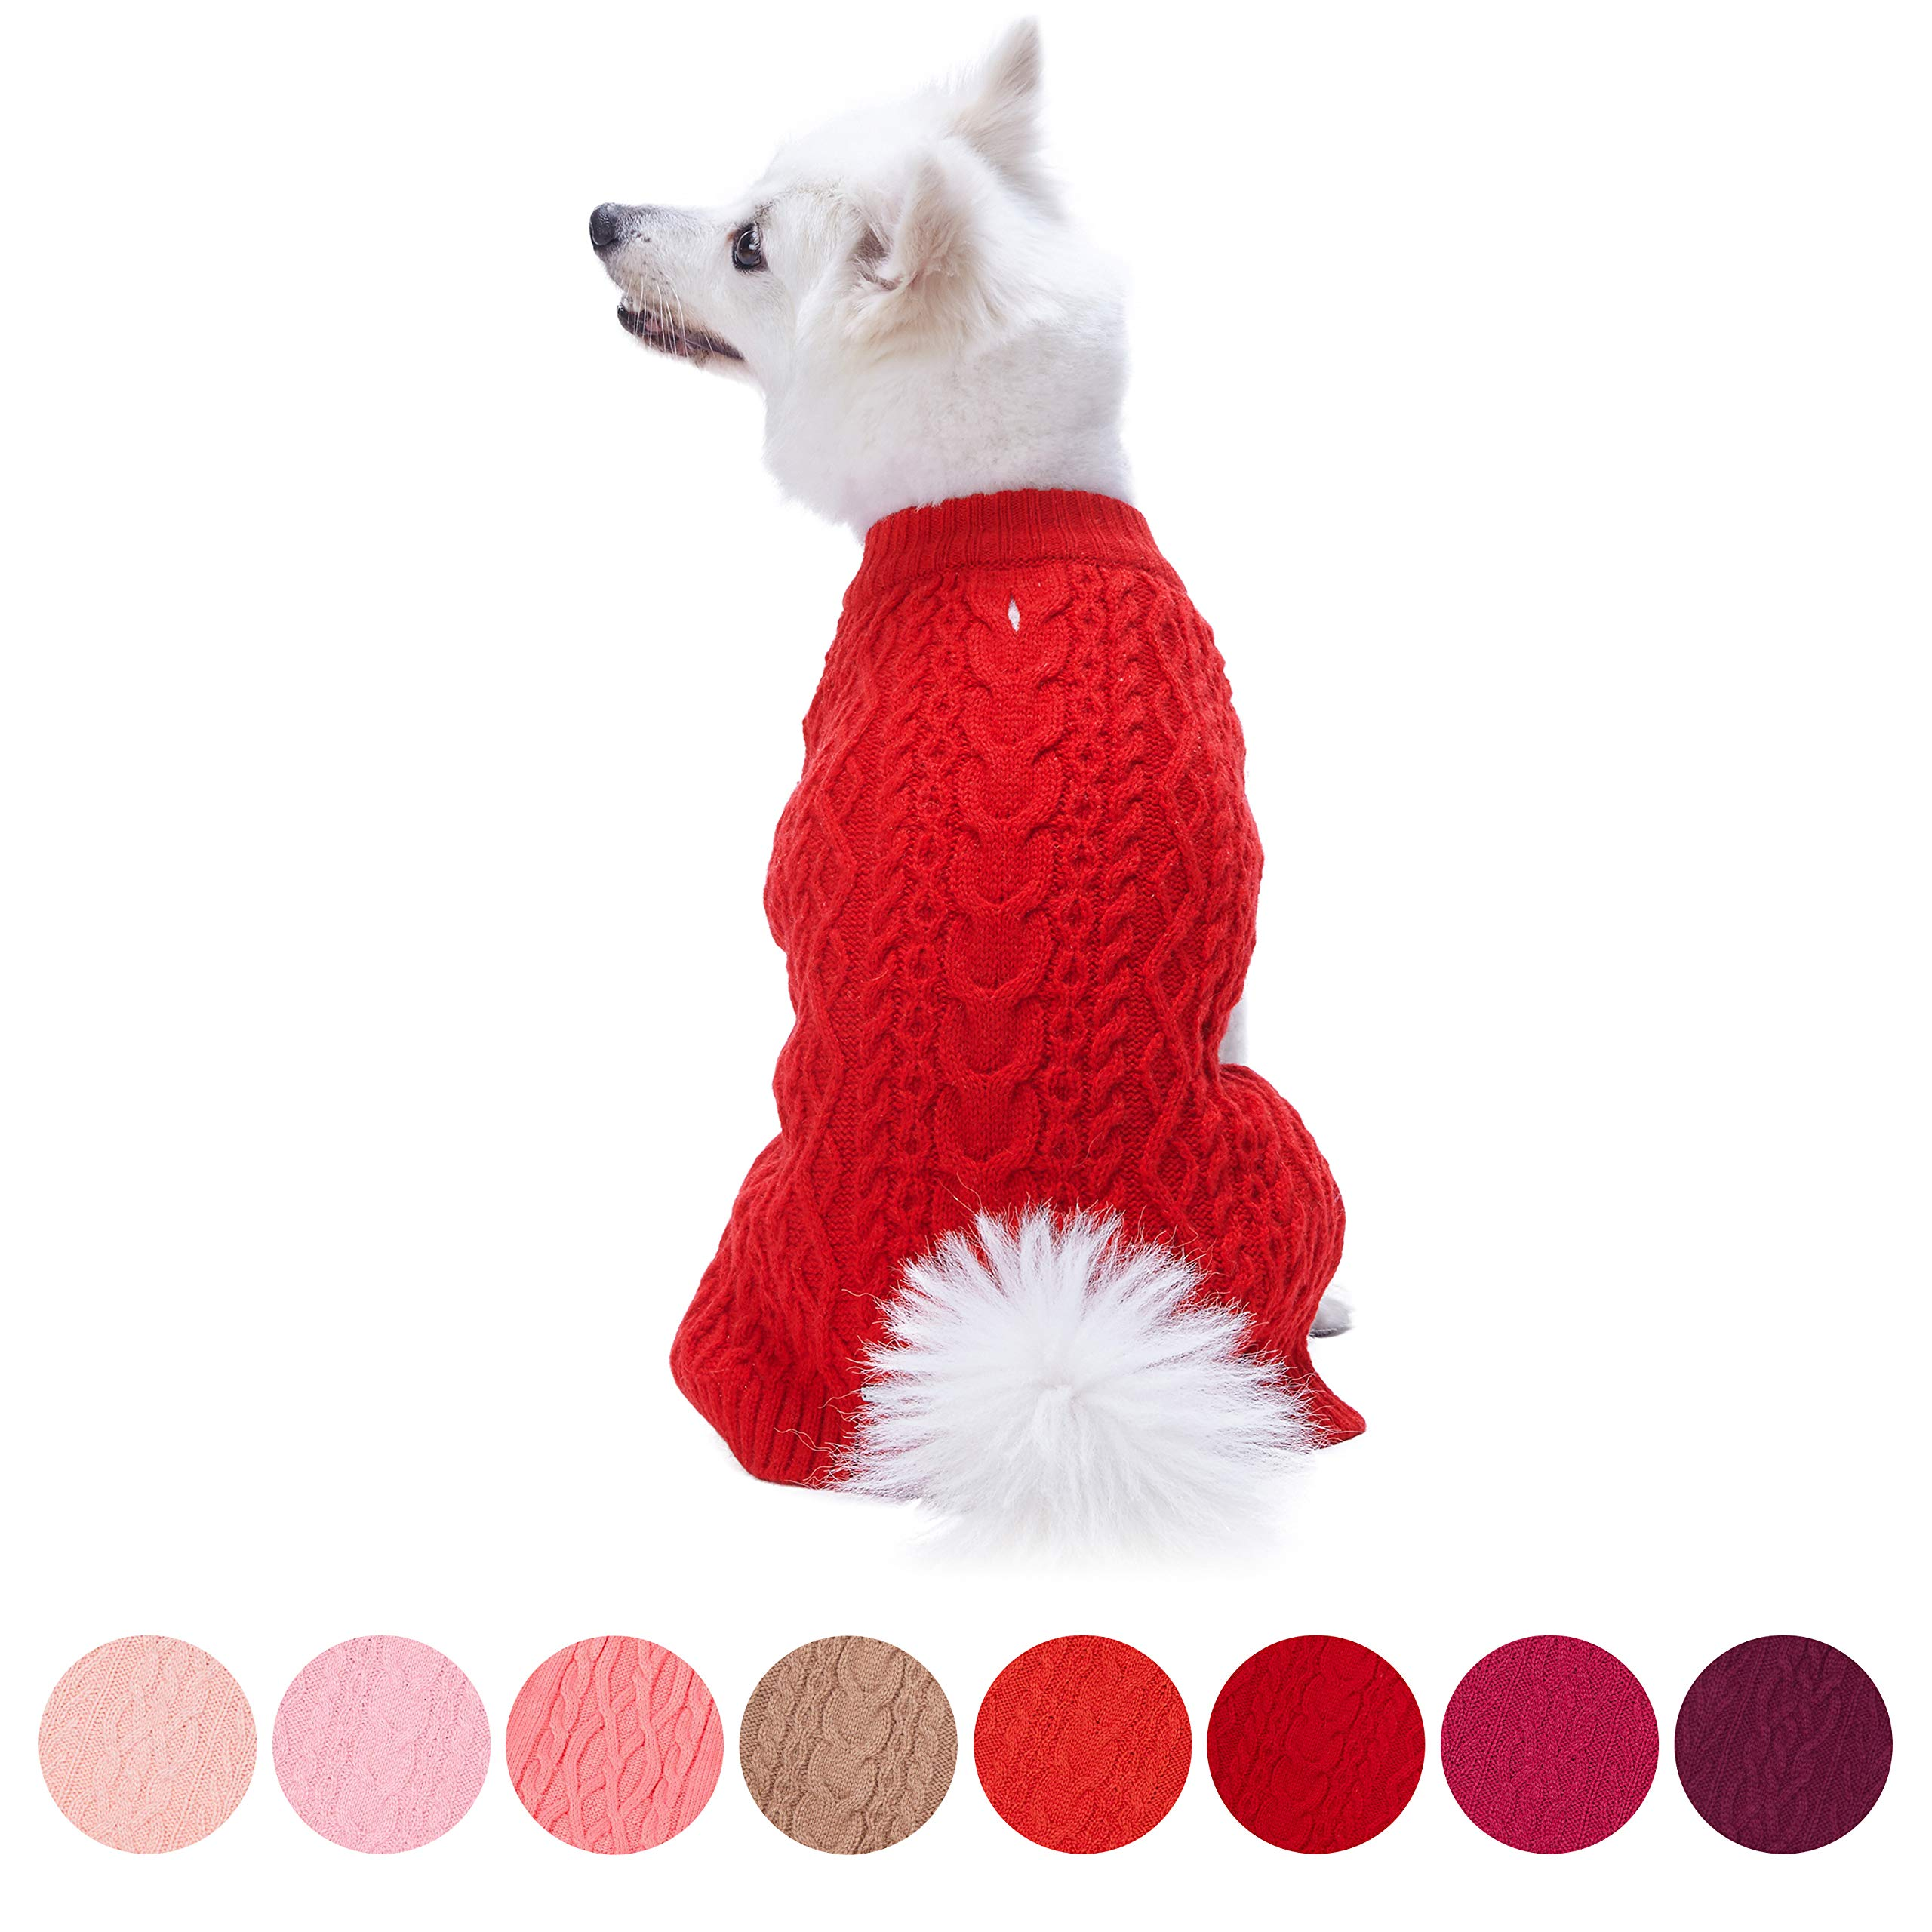 Blueberry Pet 16 Colors Classic Wool Blend Cable Knit Pullover Dog Sweater in Red Danger, Back Length 20'', Pack of 1 Clothes for Dogs